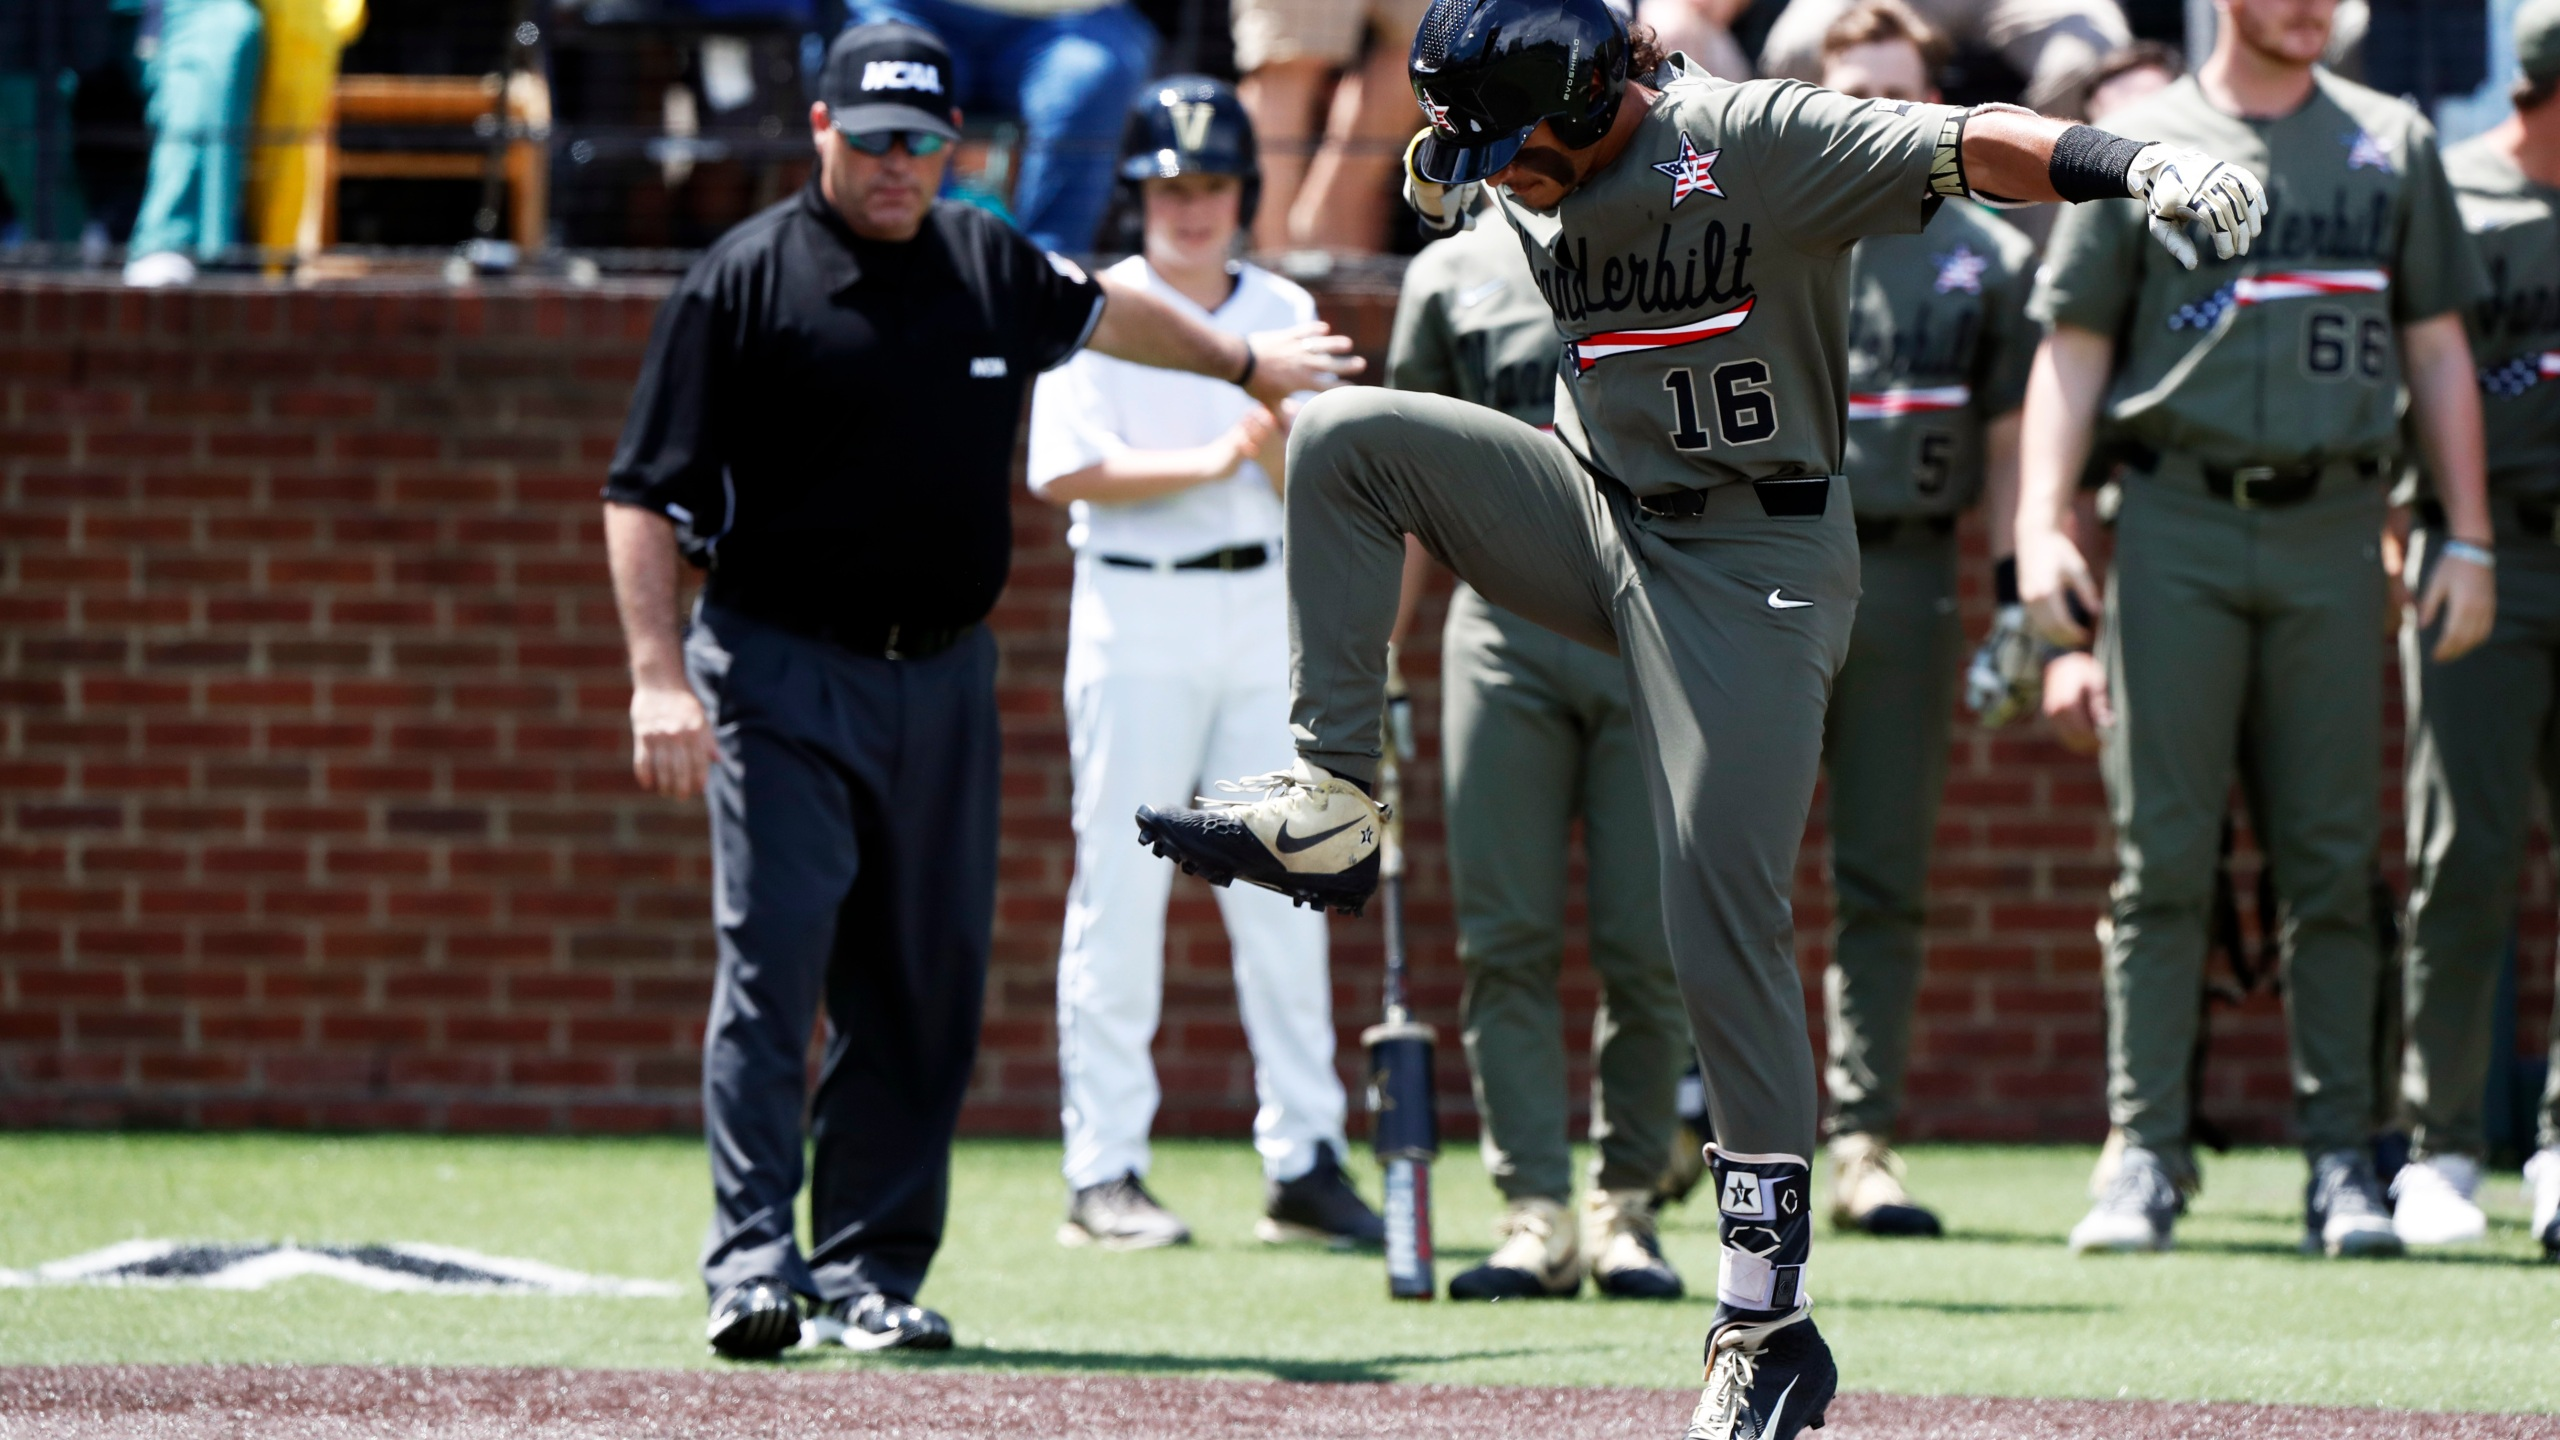 NCAA Duke Vanderbilt Baseball_1560132584873